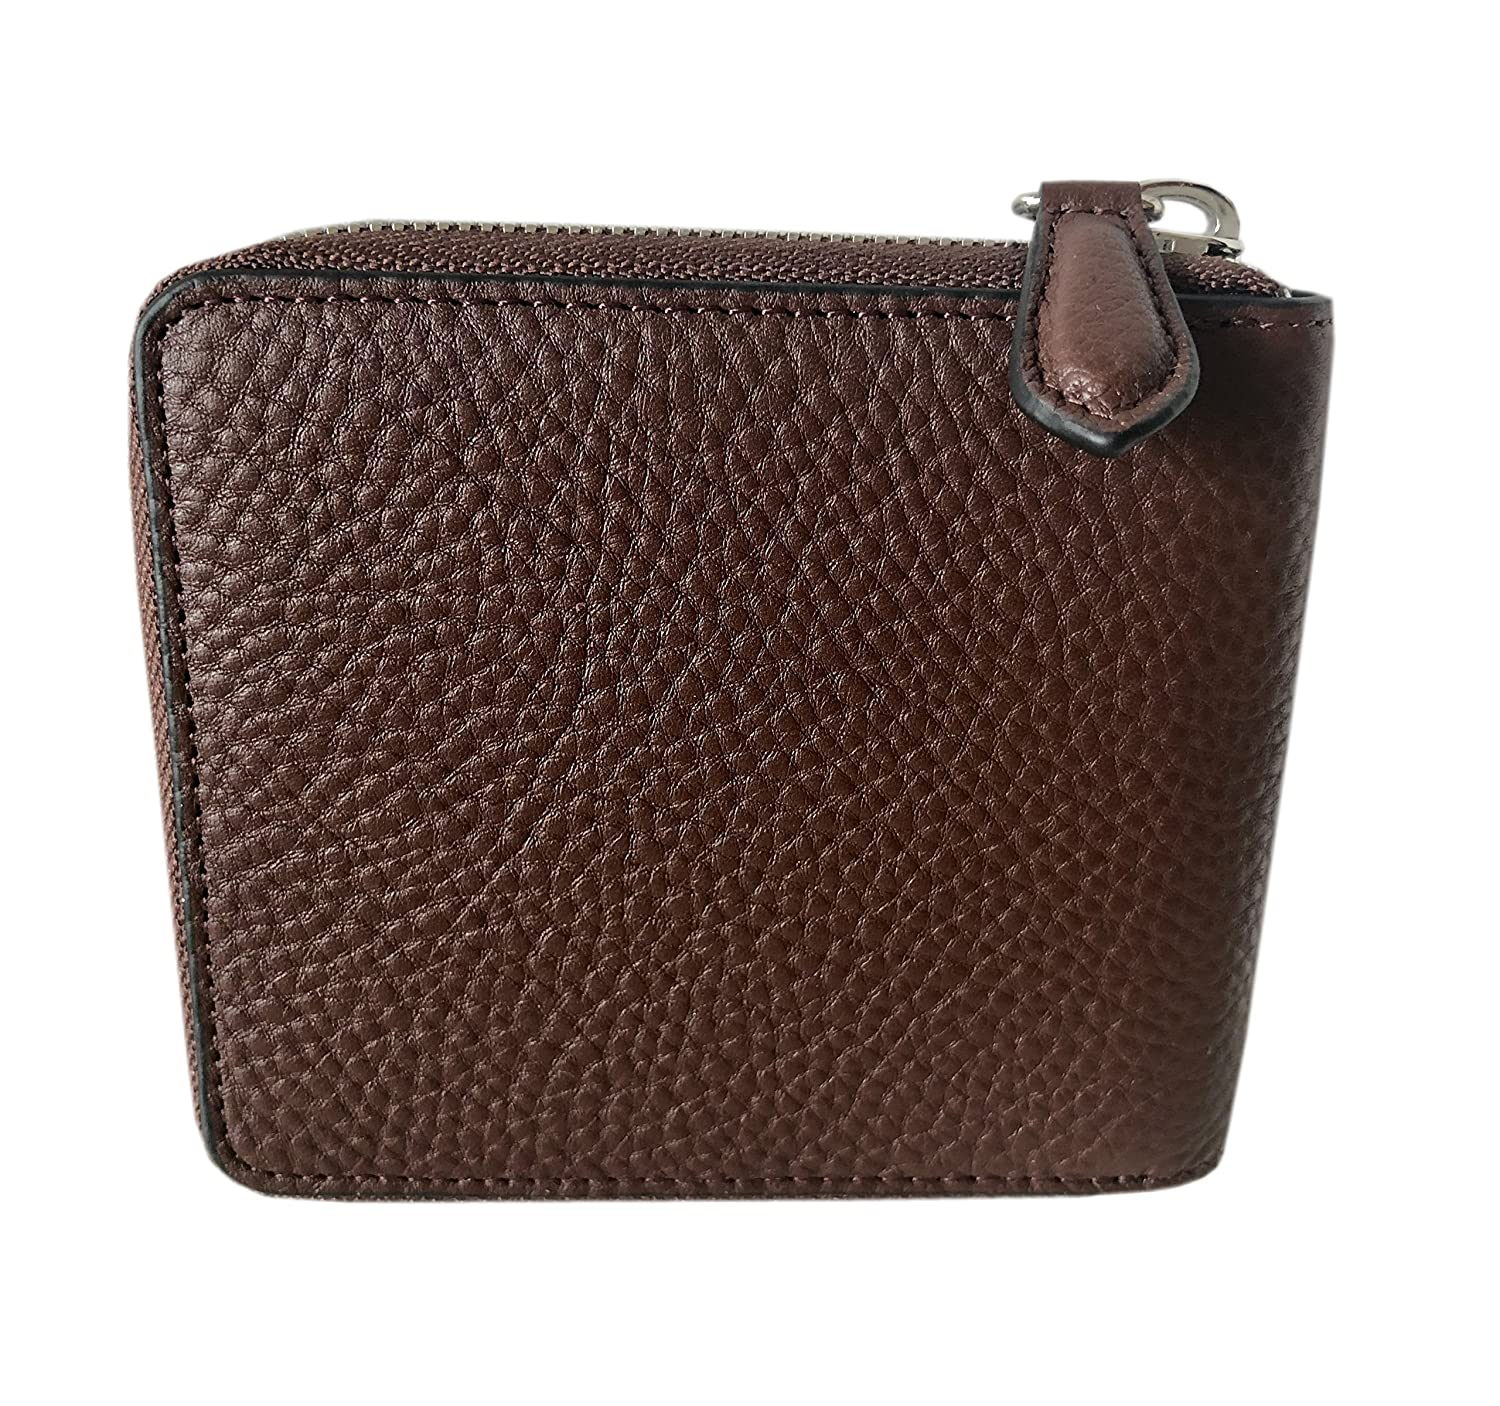 f6ea91edcb56 TED BAKER CORE Leather Tanned BI-FOLD Zip Wallet  Amazon.co.uk  Luggage